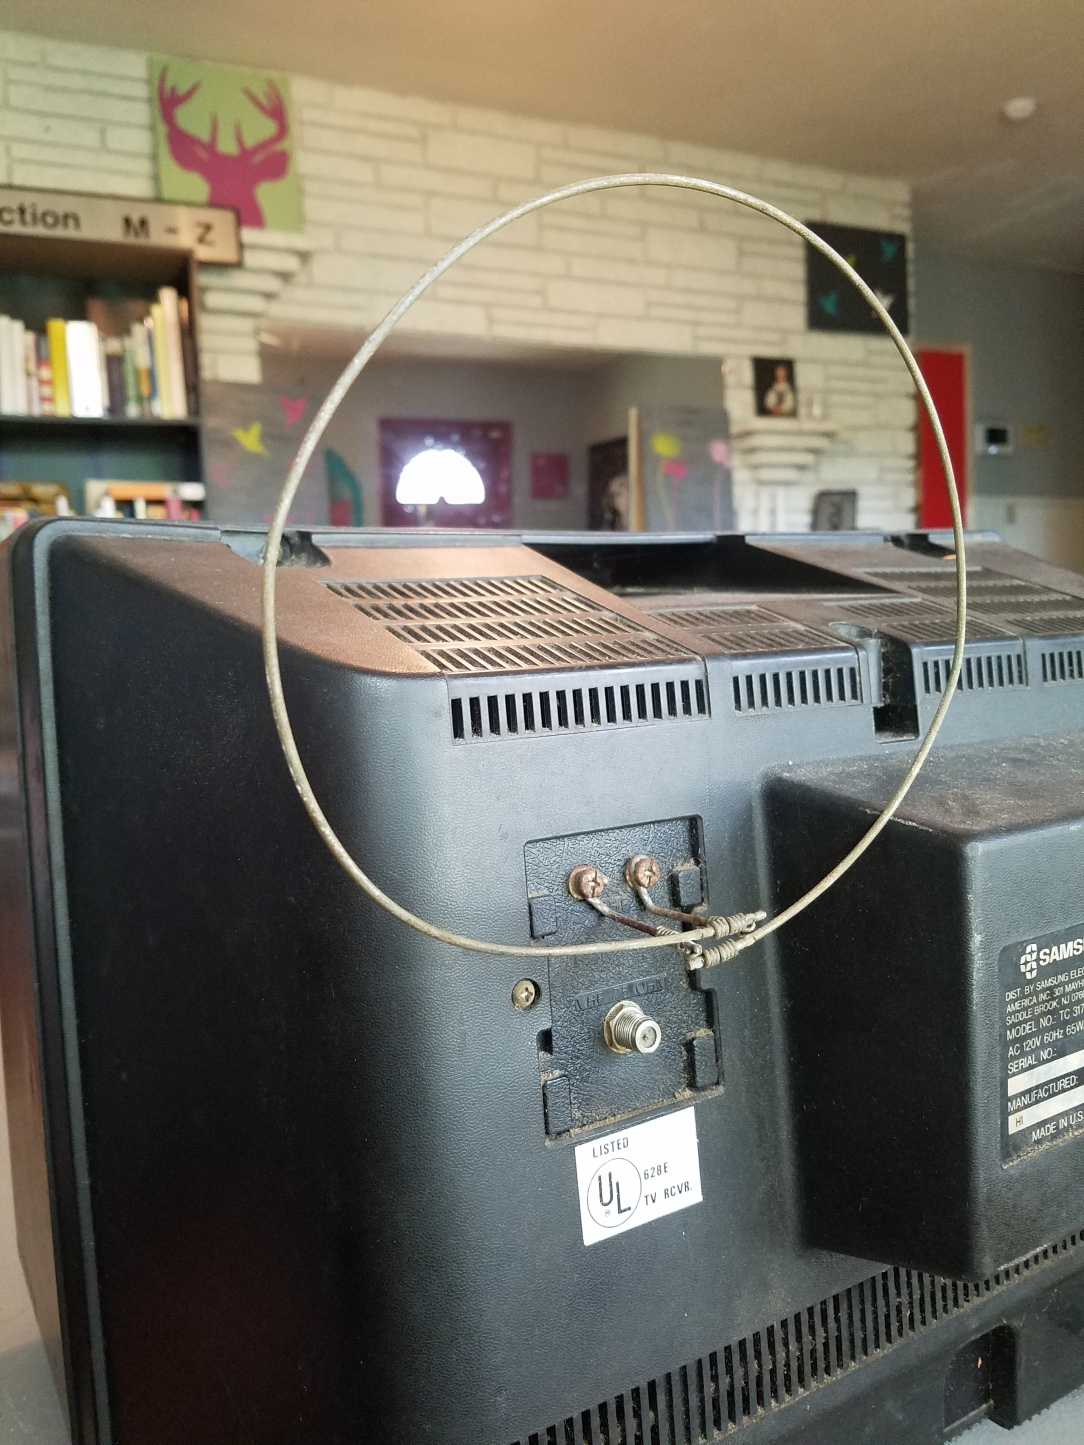 An old Samsung Celebrity television set from the 1970s or 1980s.